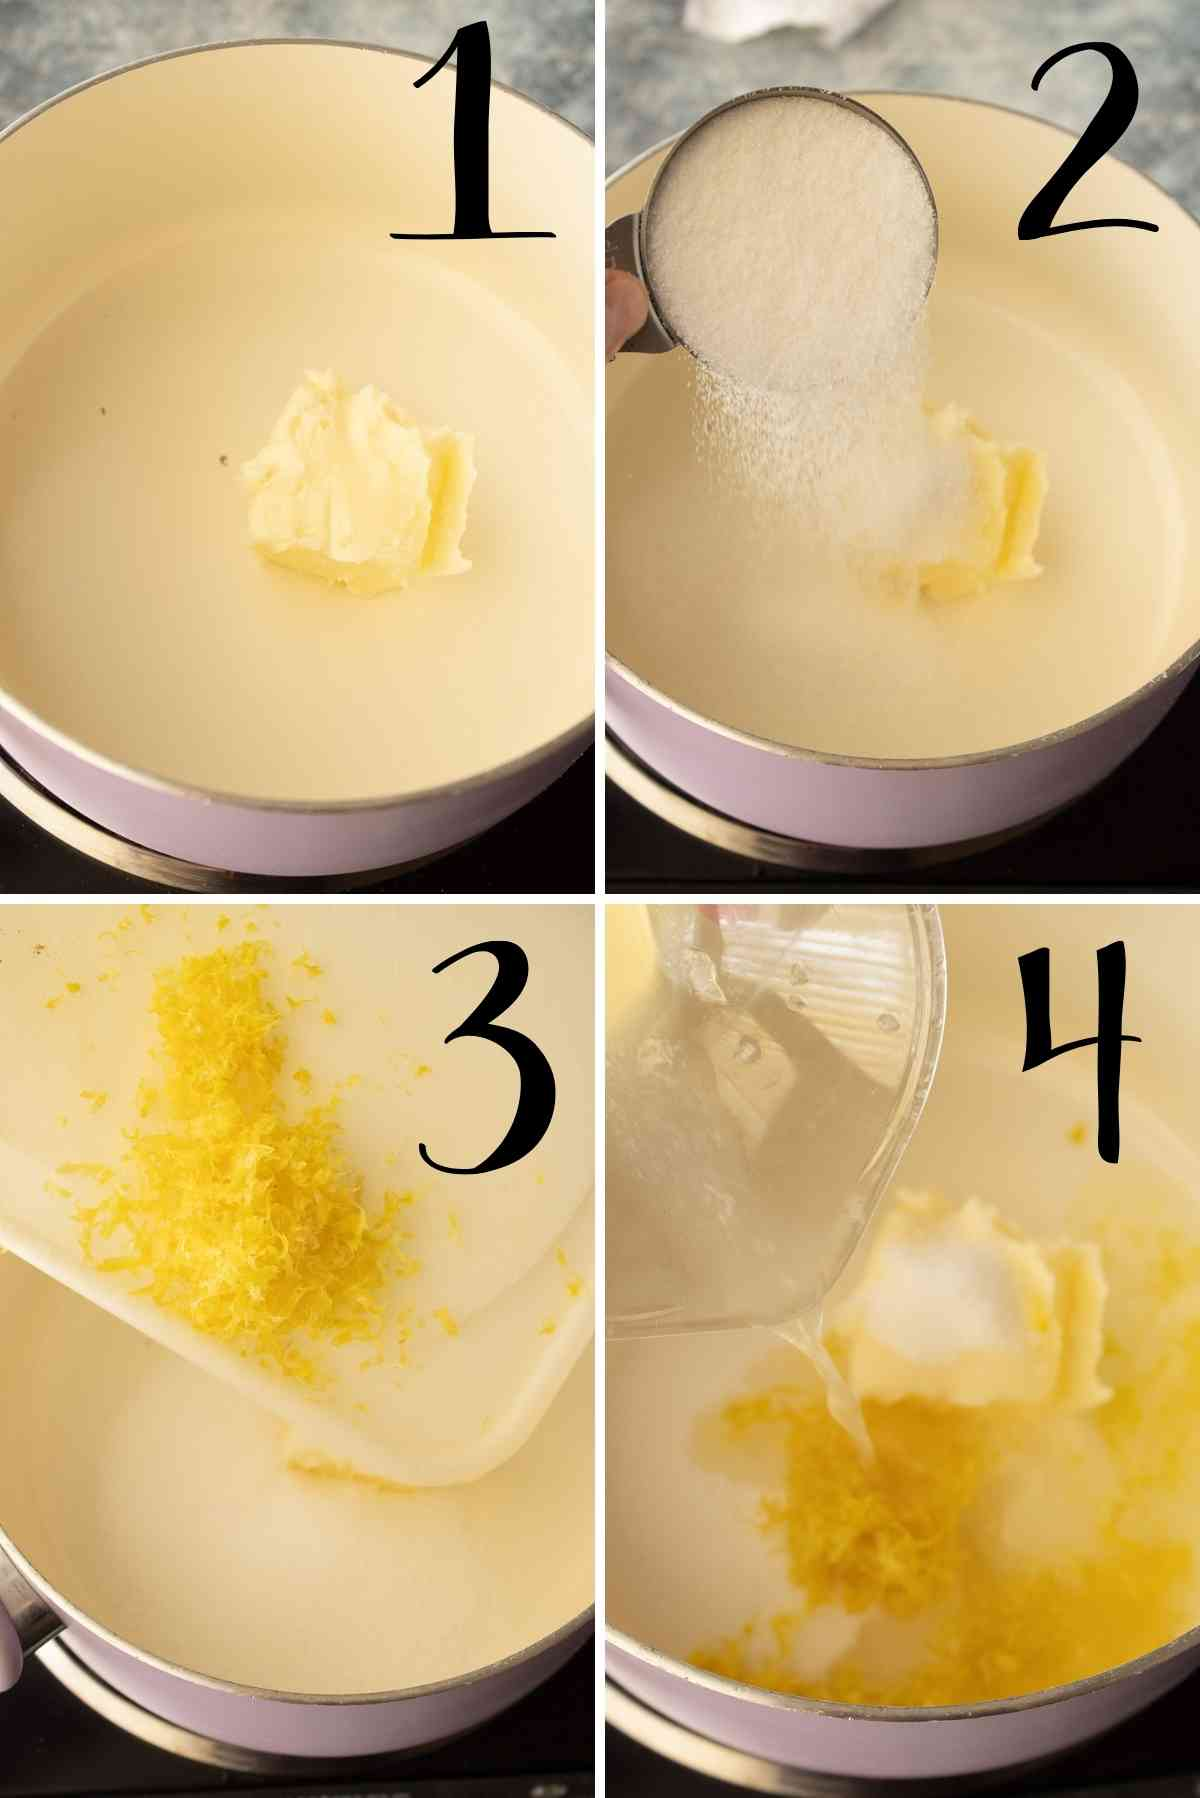 Butter, sugar, lemon juice and zest brought to a boil.